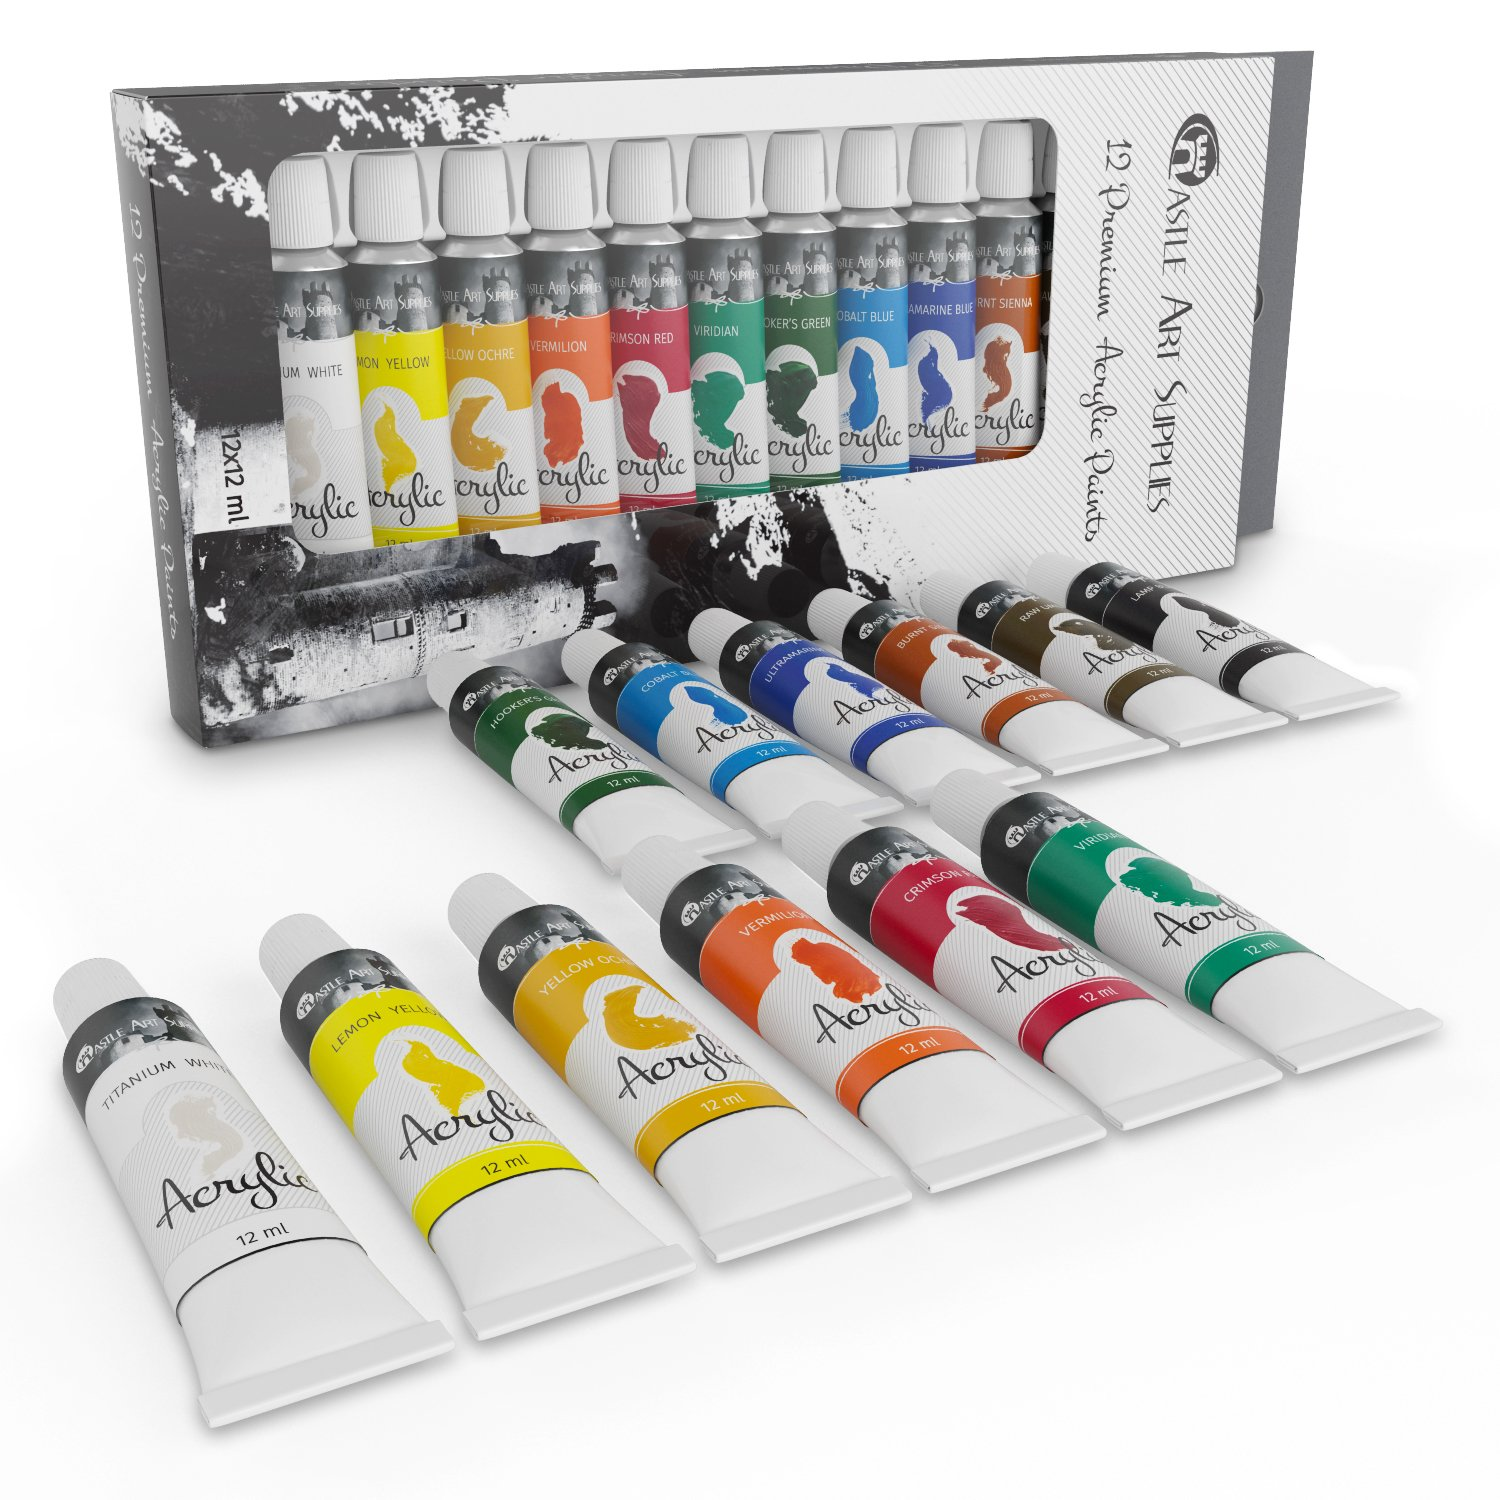 Acrylic Paint Set for Beginners, Students or Artists - A Perfect Mix of Quality and Versatility - Vivid Colours - Easy to Blend and Good Coverage on Paper, Canvas, Wood or Fabric - Not Too Thick for Great Flexibility - 100% Satisfaction Money Back Guarant